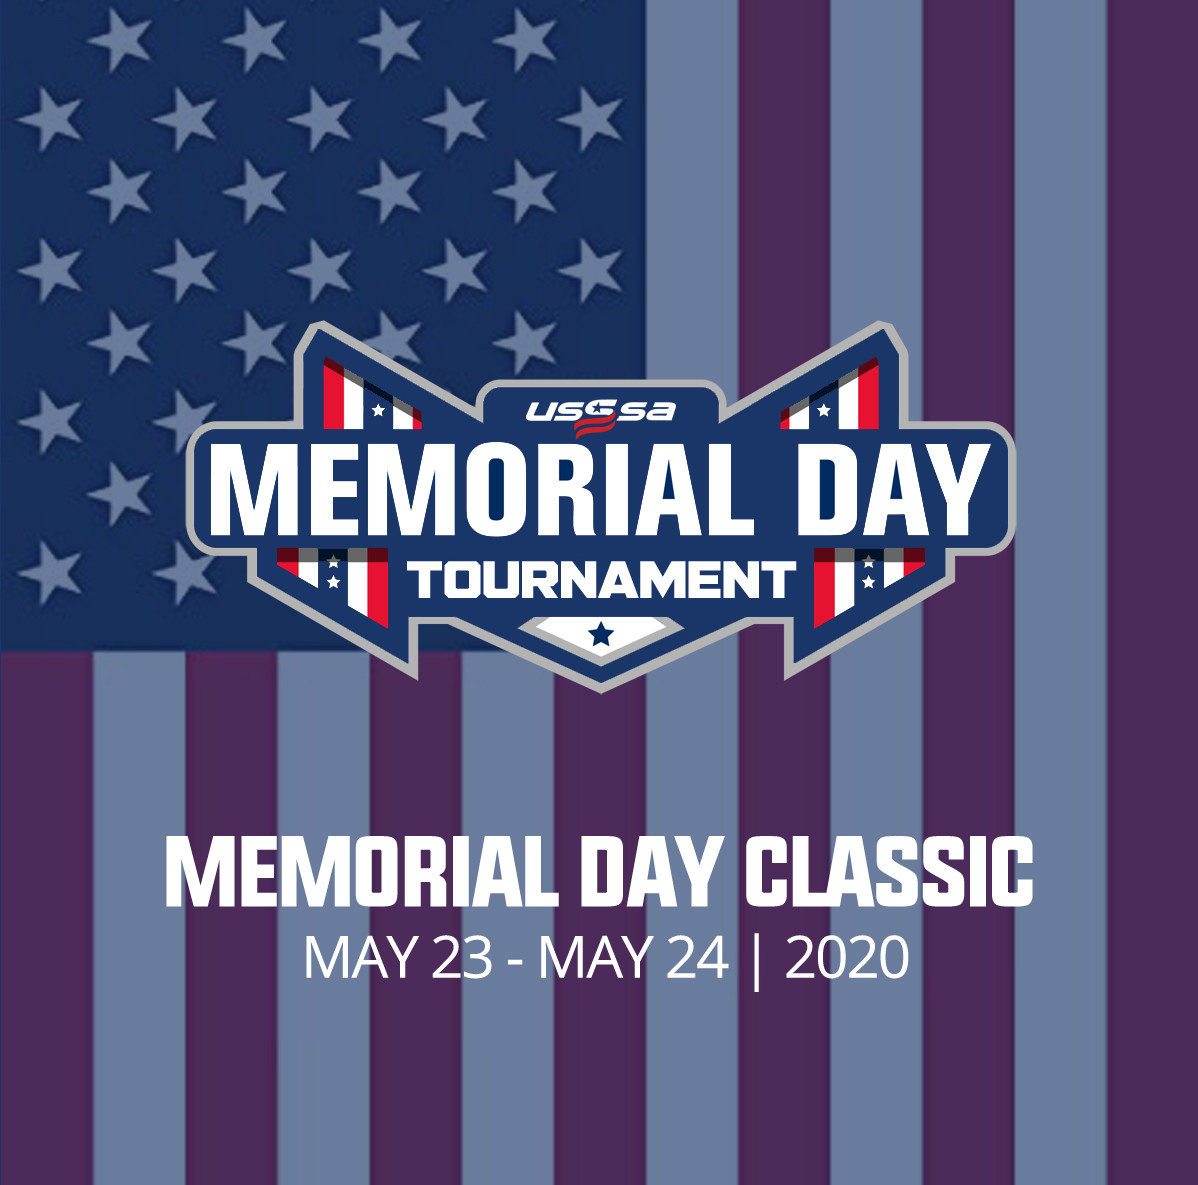 UPSTATE - MEMORIAL DAY CLASSIC